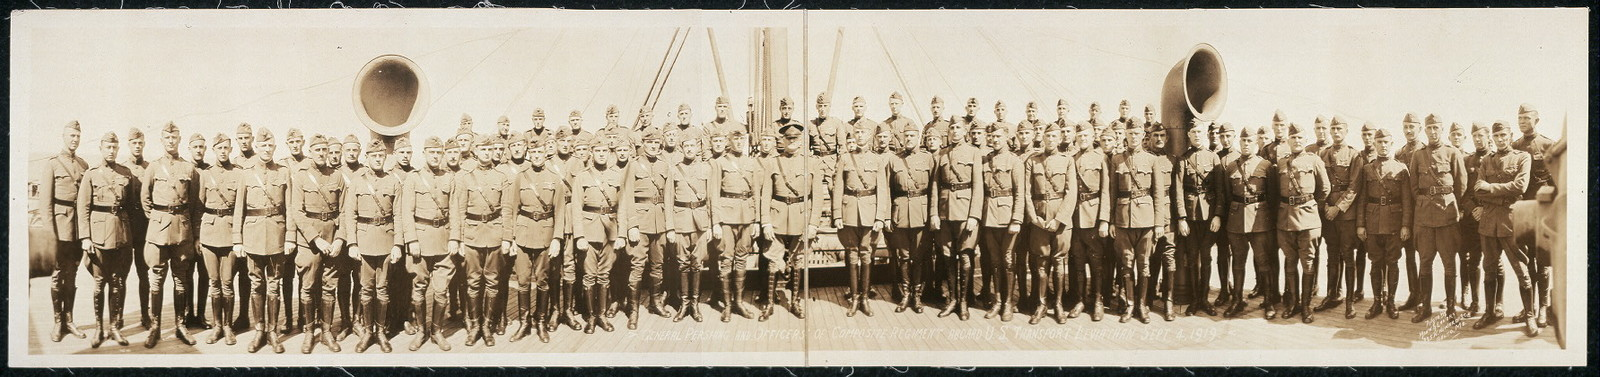 General Pershing and officers of composite regiment aboard U.S. transport Leviathan, Sept. 4, 1919